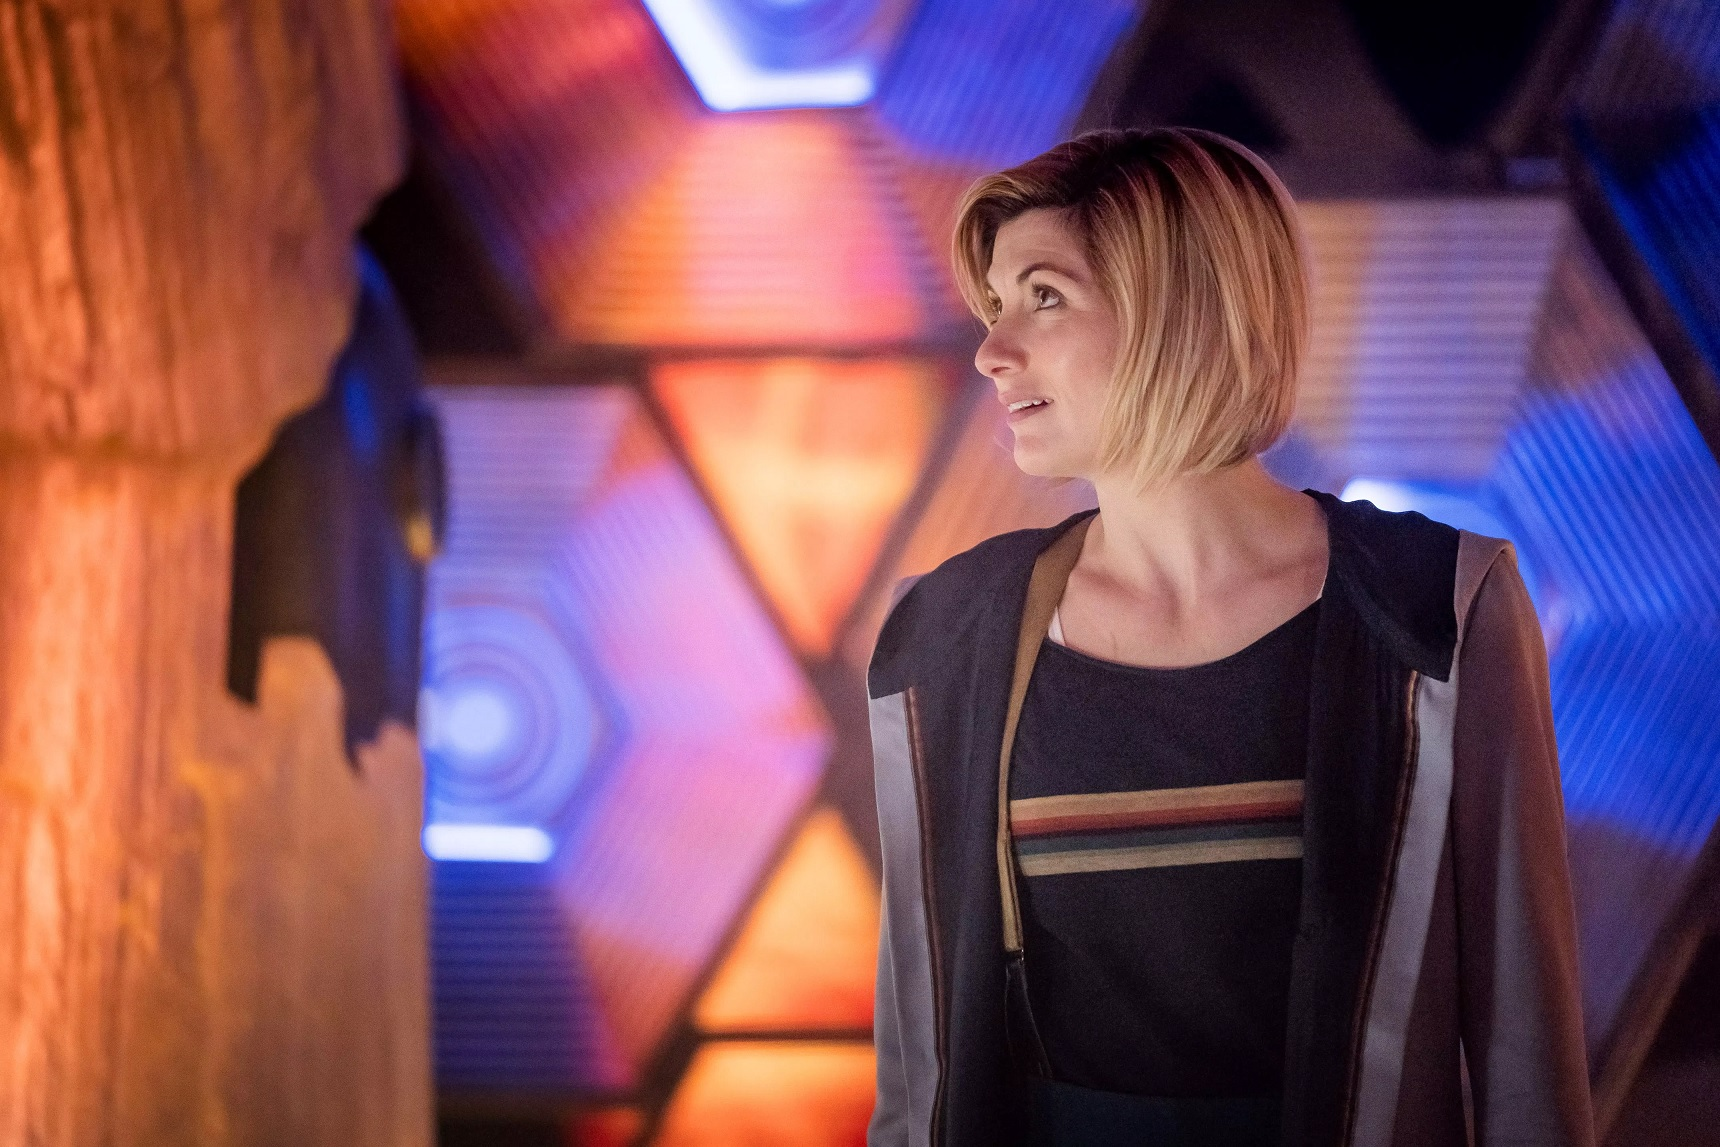 The BBC All But Confirms Return of Classic Doctor Who Monster in Series 13